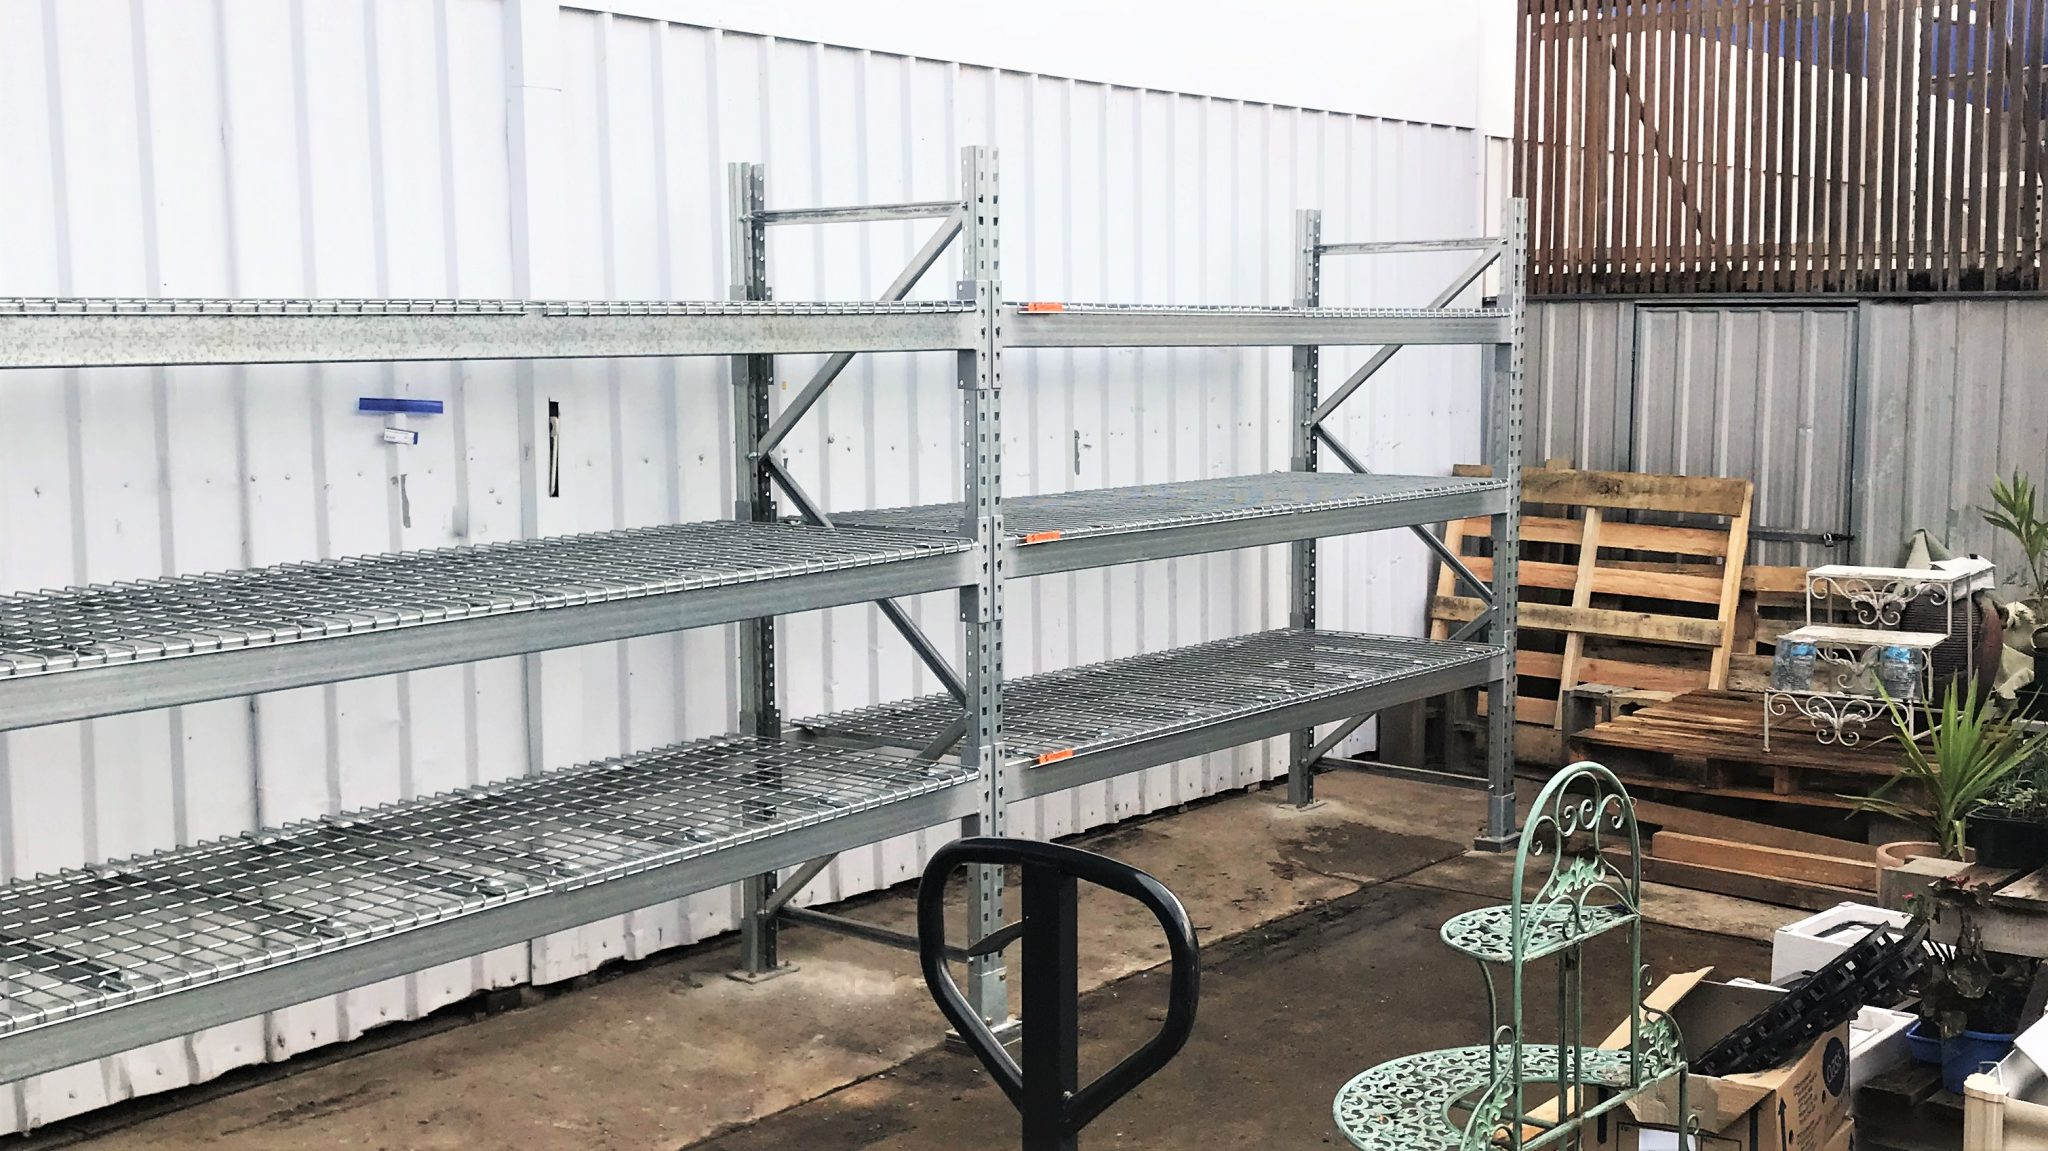 Galvanised Racking for a Hardware Store with 3 levels